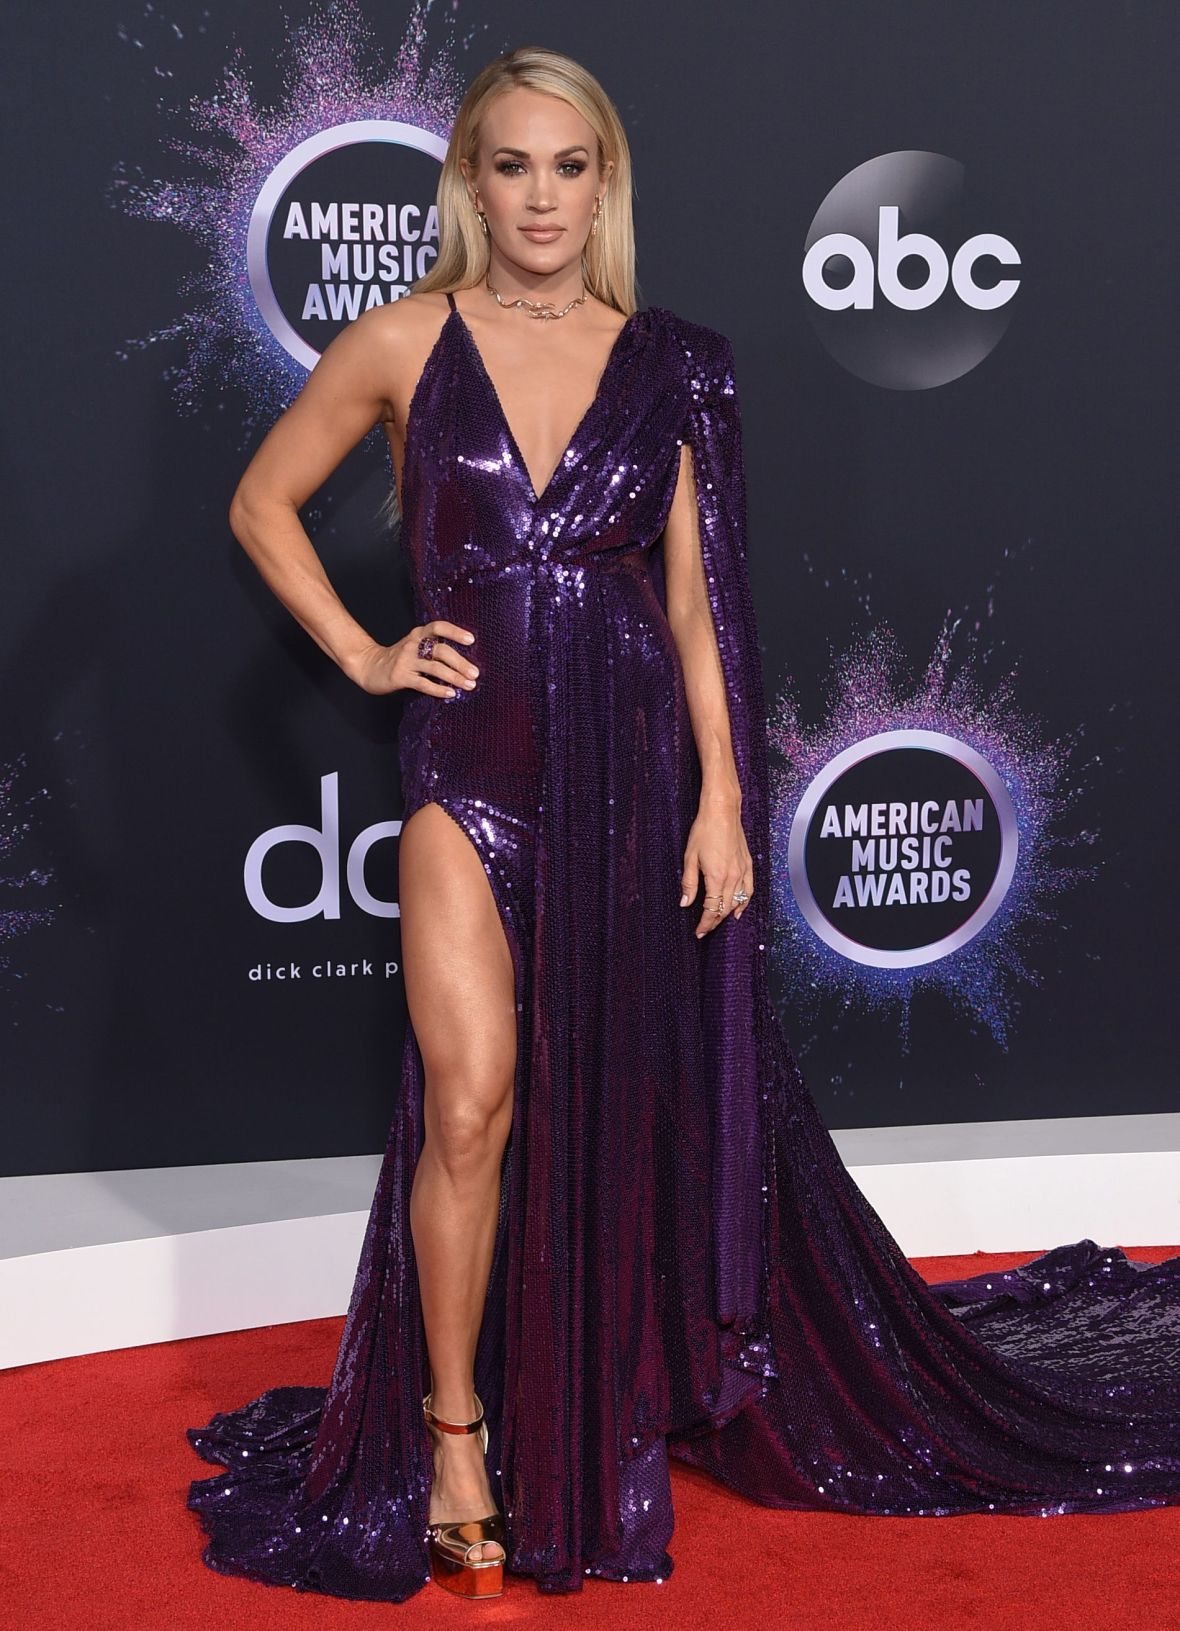 Carrie Underwood in a Purple Dress on the 2019 AMAs Red Carpet